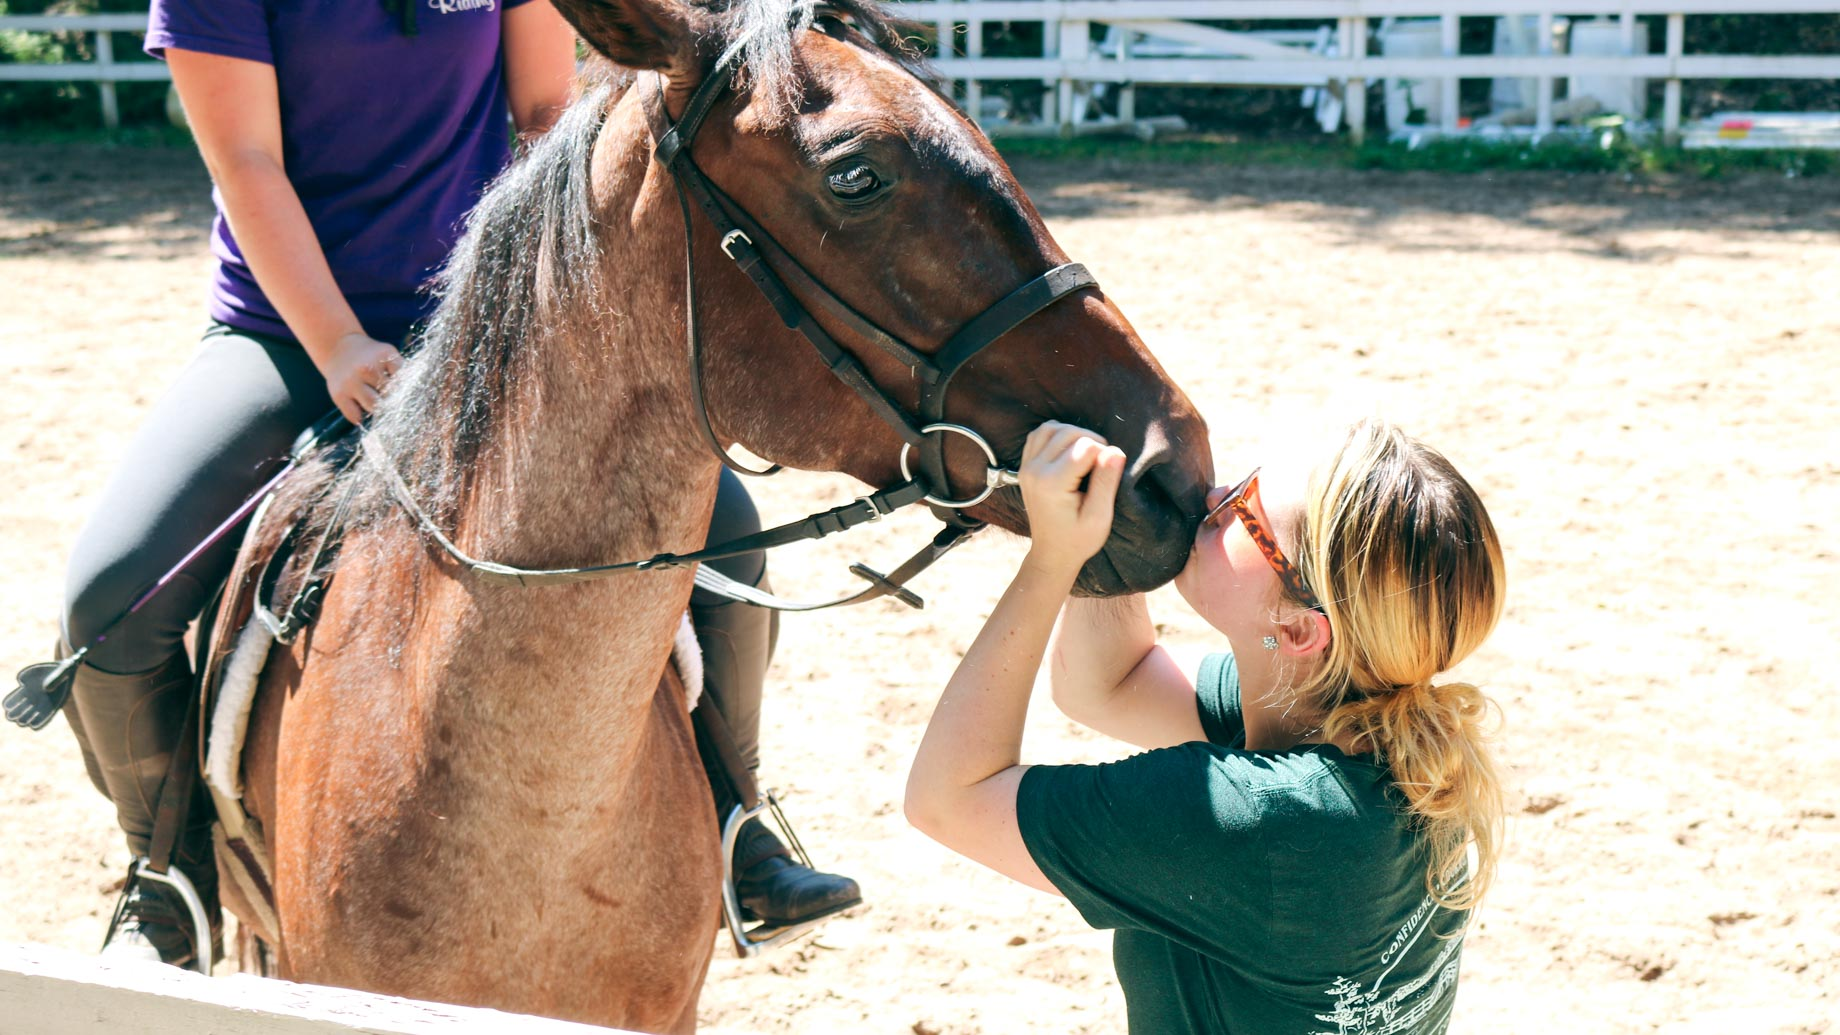 Girl kisses a horse on the nose